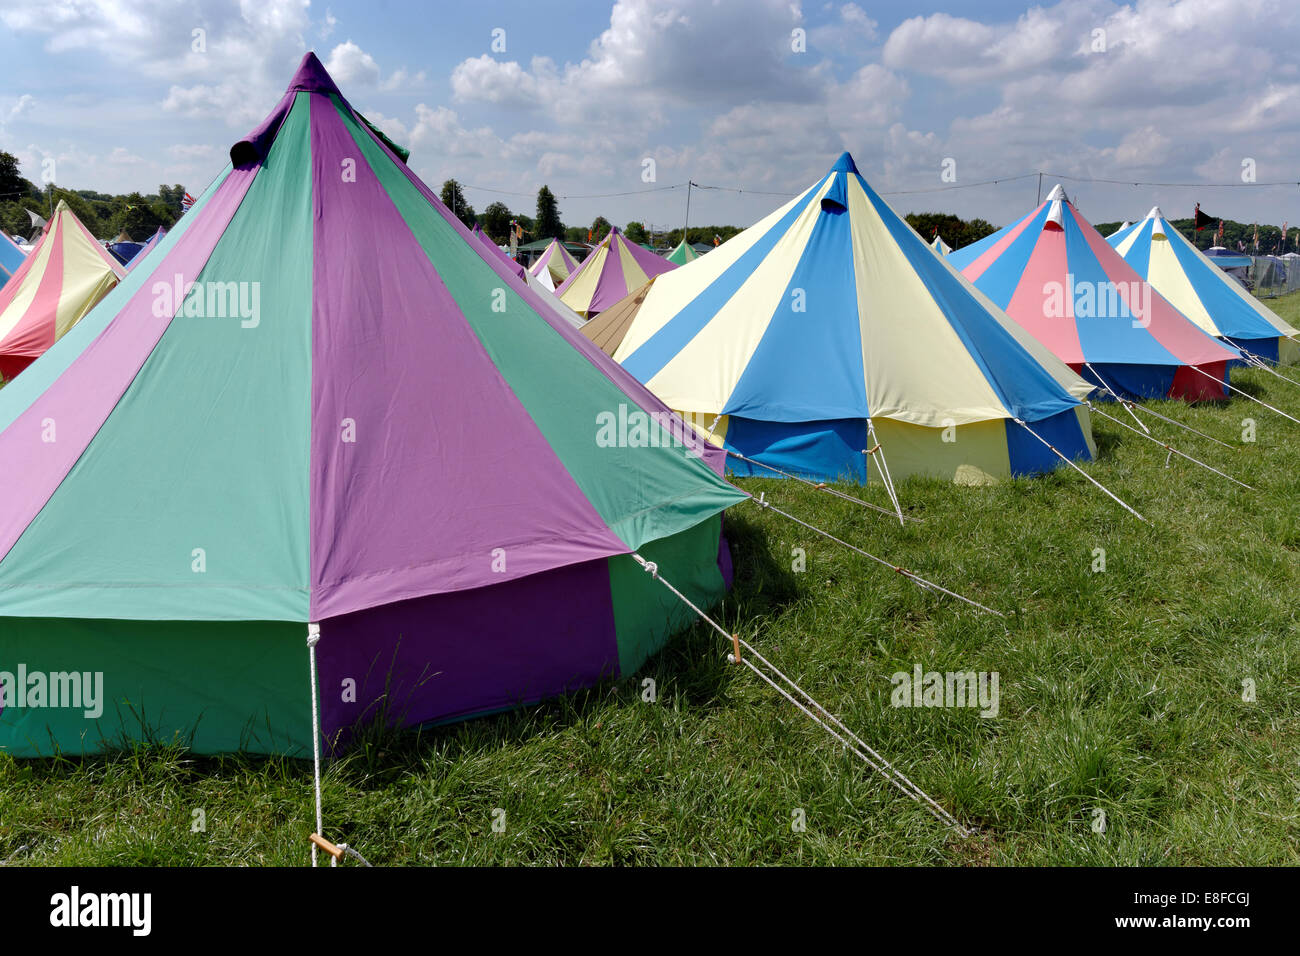 Glamping Colorful Tents WOMAD 2014, Charlton Park, Malmesbury,  Wiltshire,   England, UK, GB. - Stock Image